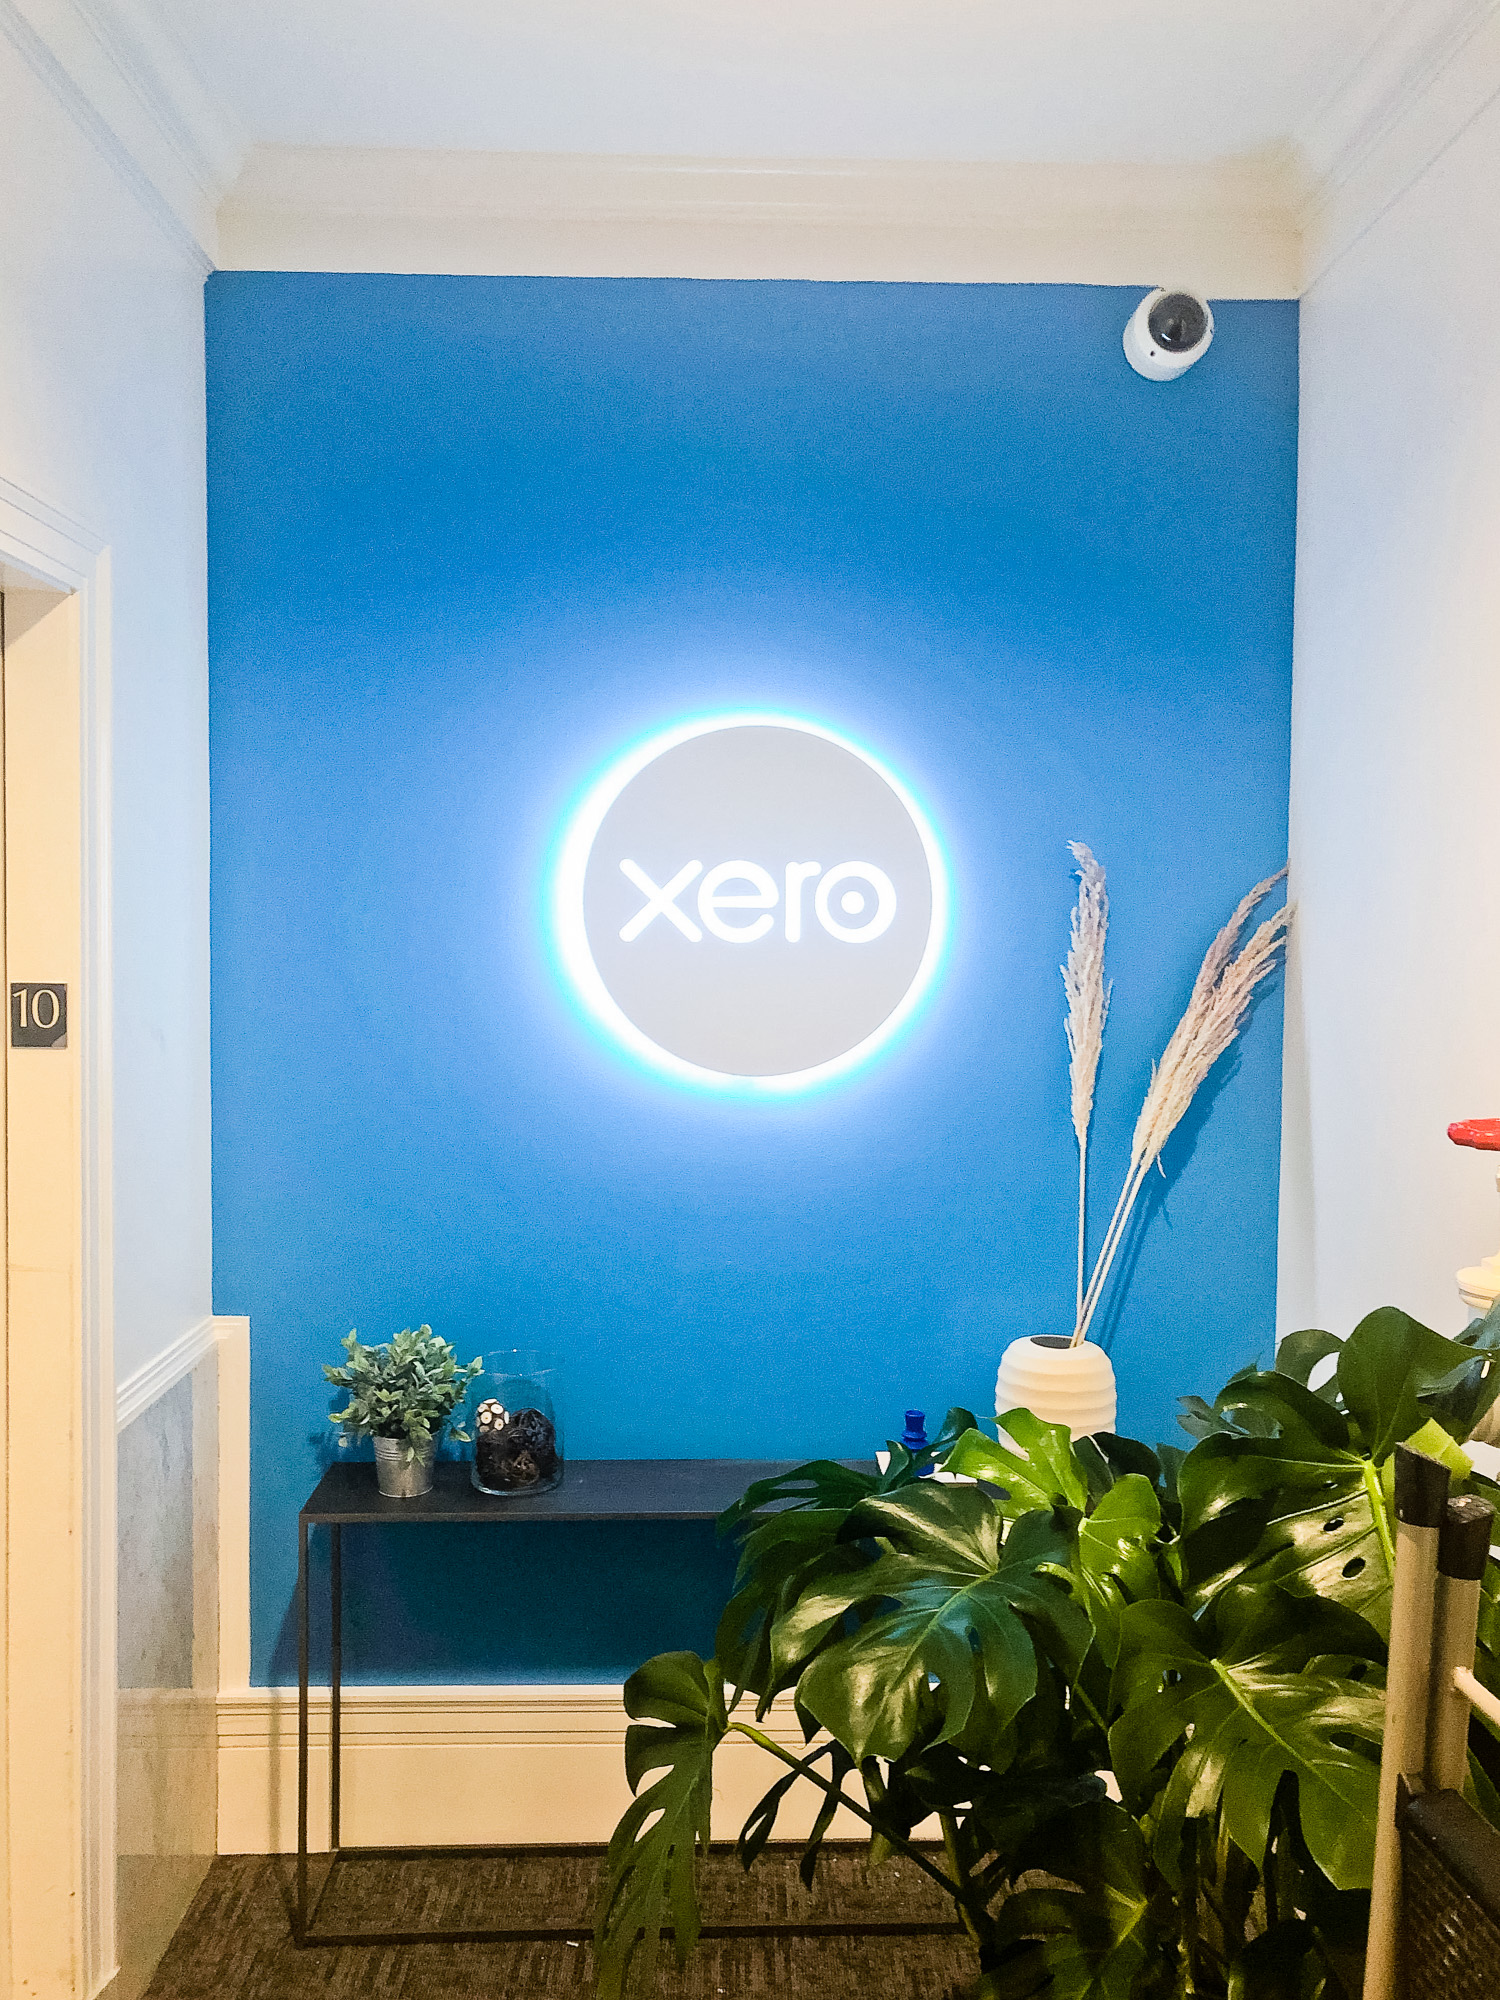 Illuminated, back-lit white sign on blue lobby wall for Xero, a cloud-based accounting software platform for small and medium-sized businesses.